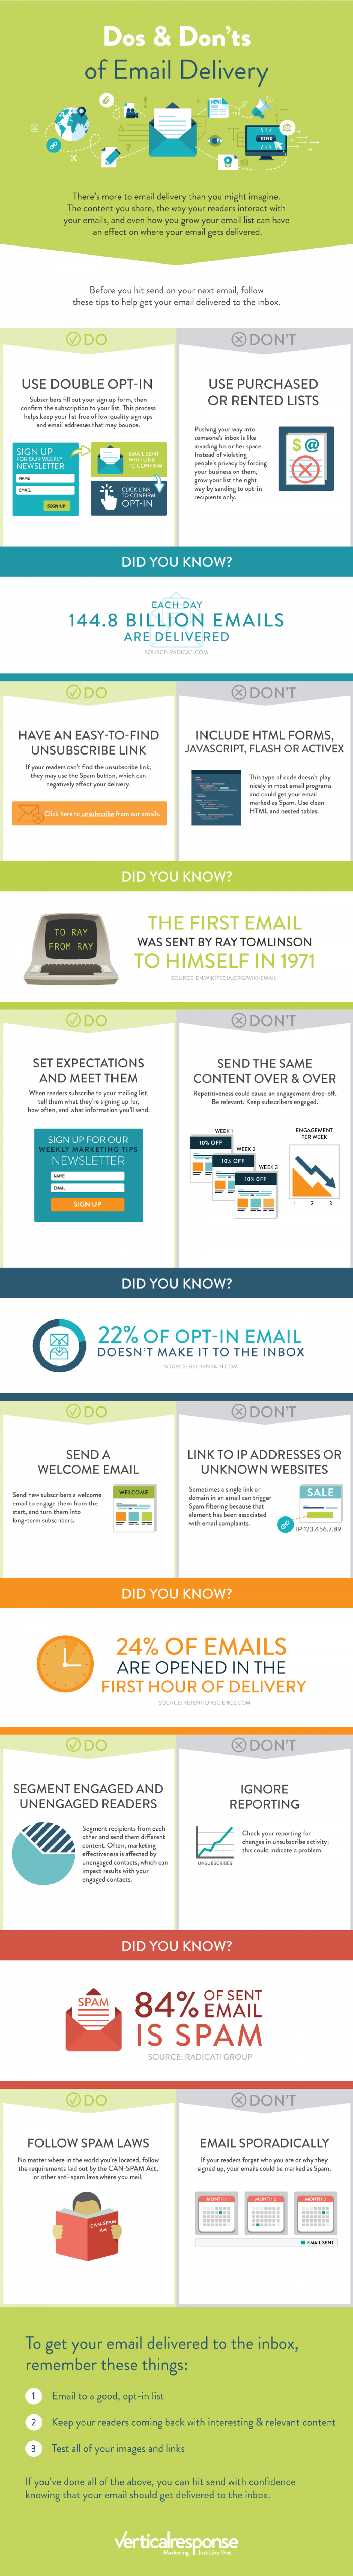 The Dos and Don'ts of Email Delivery